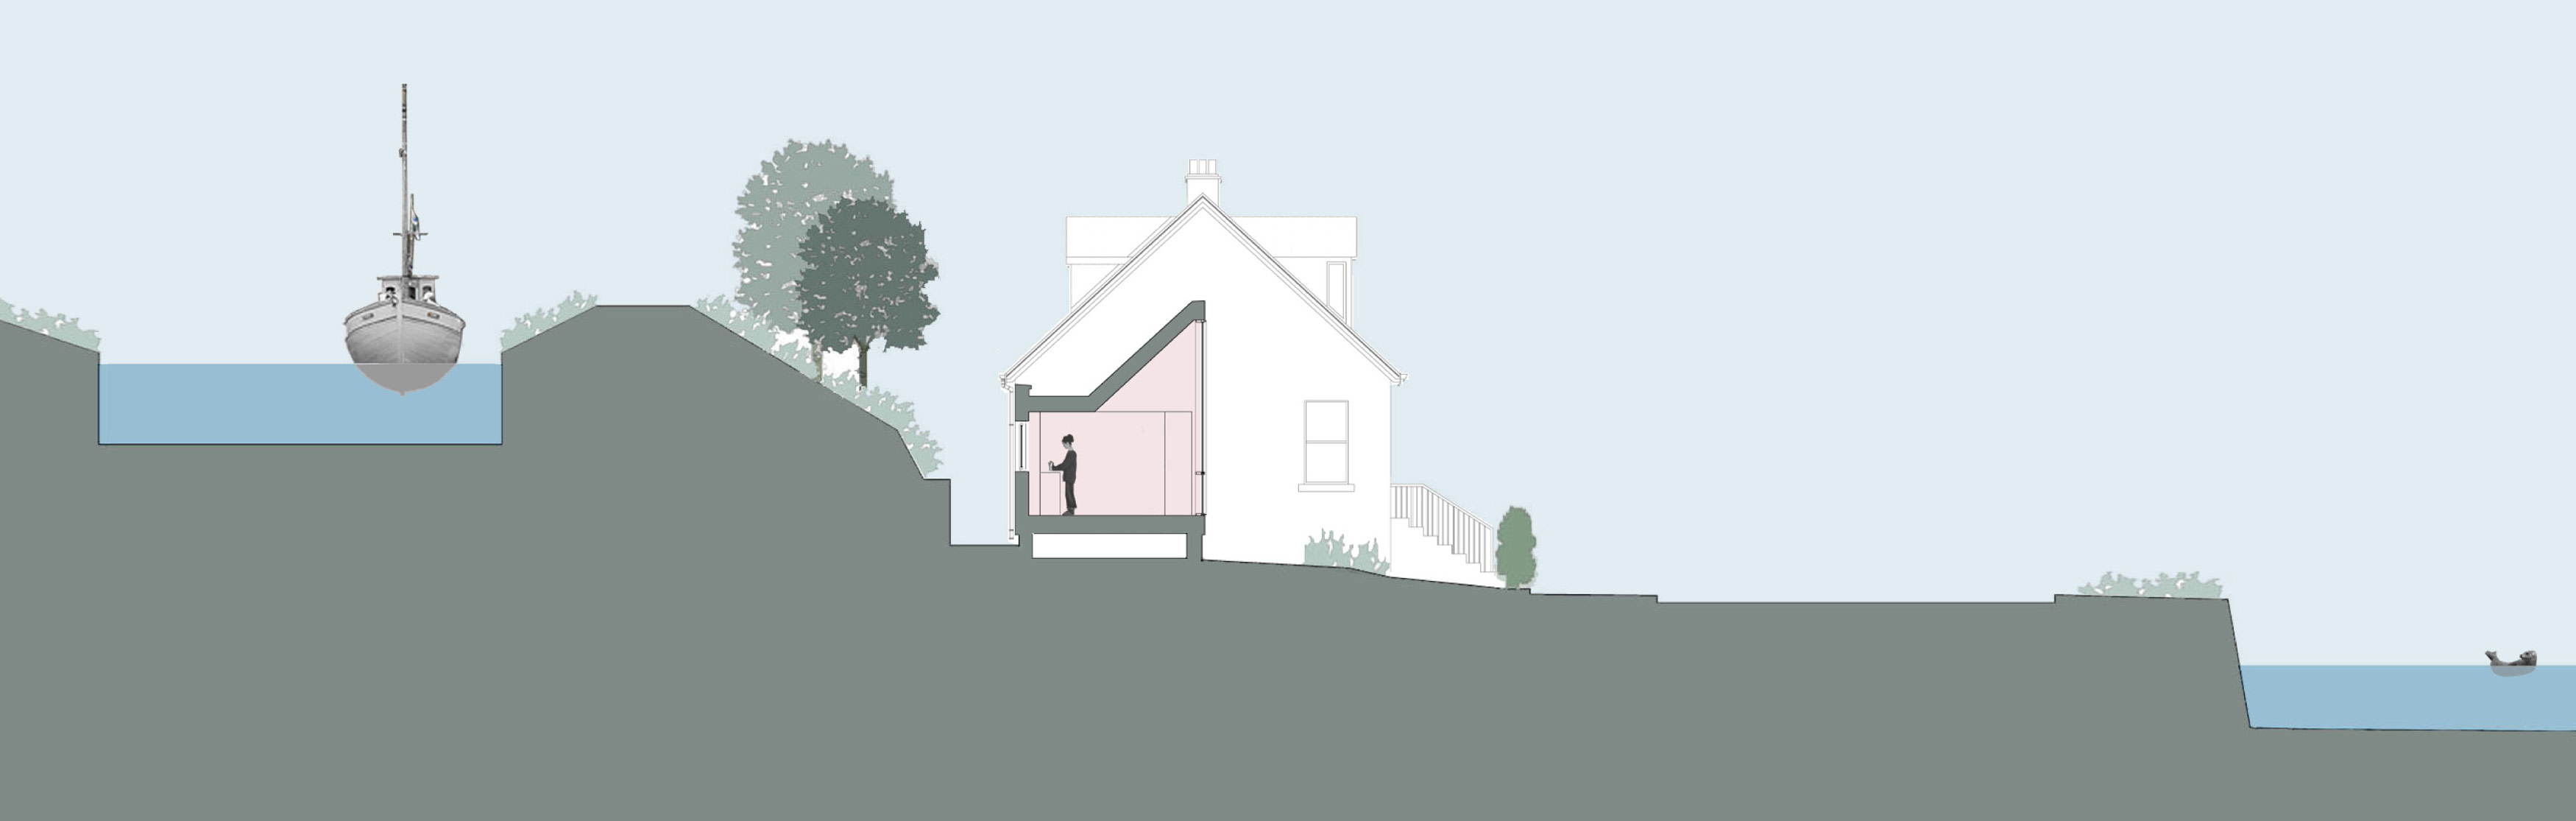 Elevation, The Sheiling, Overlooking Loch Fyne, Scotland by APD Architecture